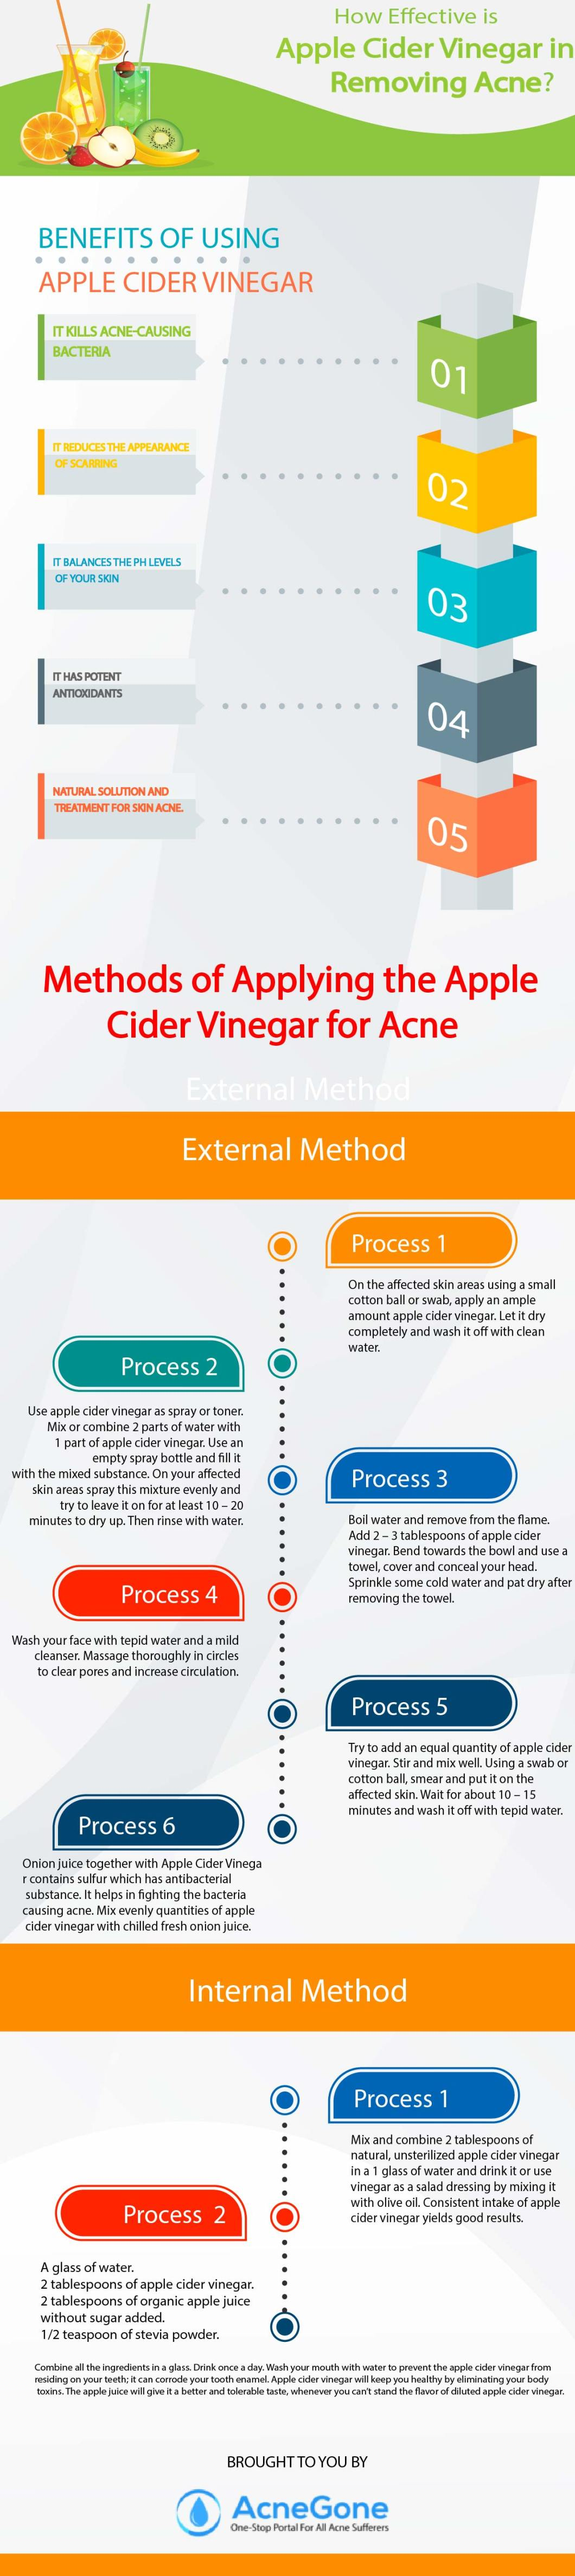 Kill Acne! How Apple Cider Vinegar is the Solution to Painful Acne - Infographic